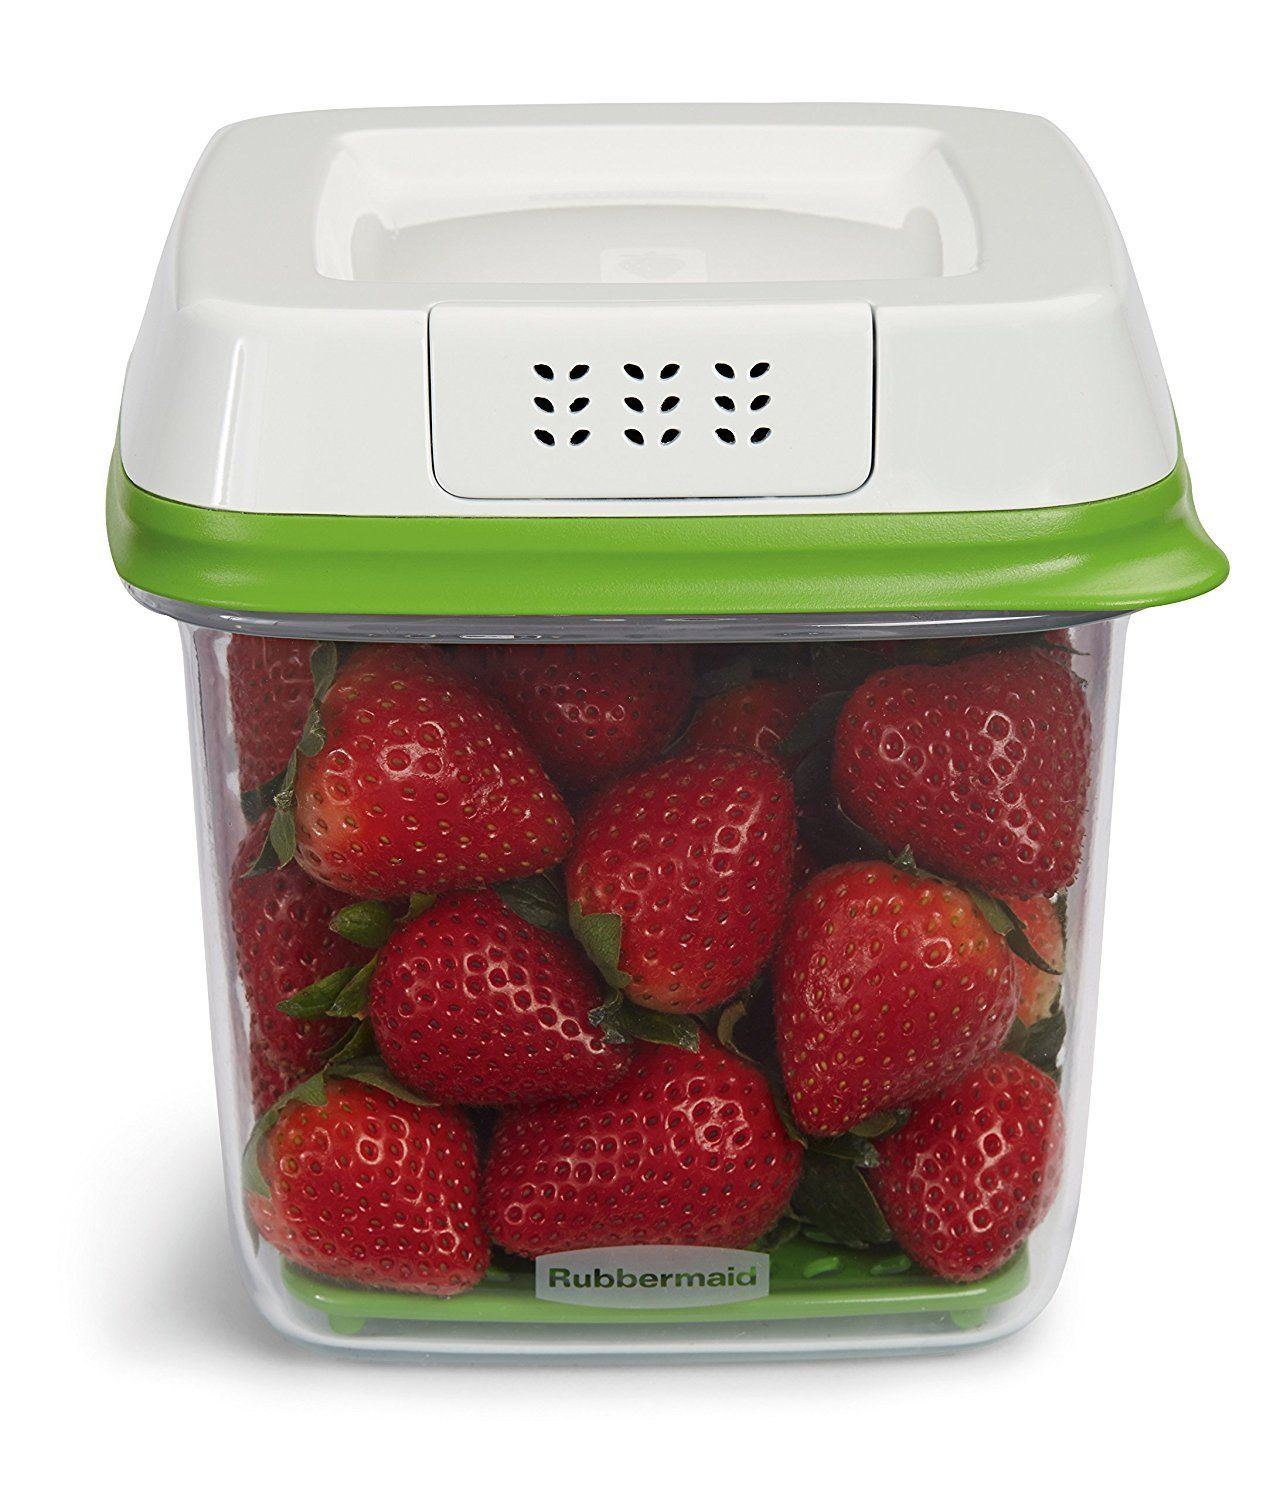 Rubbermaid FreshWorks Produce Saver Food Storage Container, Medium, 6.3 Cup, Gre 1